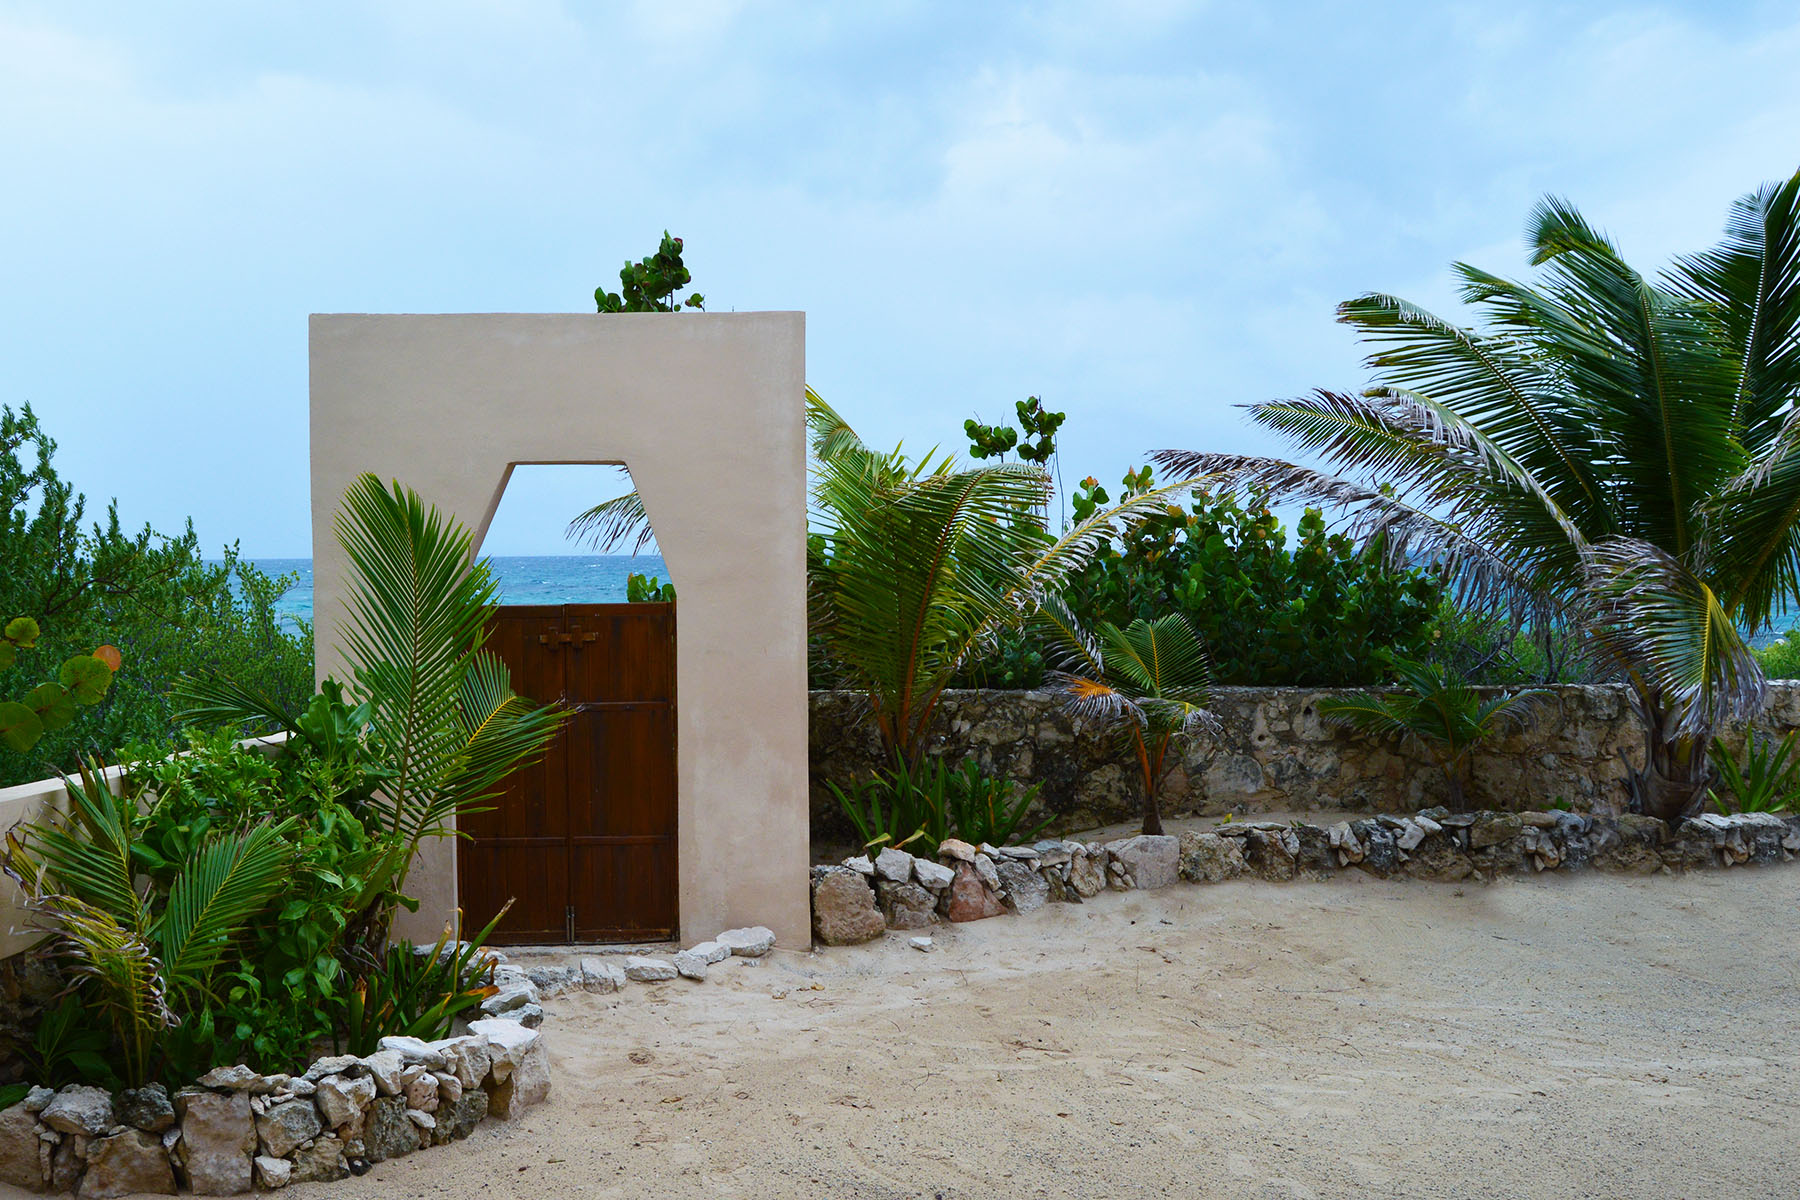 Additional photo for property listing at ESPECTACULAR RESIDENCIA EN PLAYA NORTE ISLA MUJERES Spectacular Residence in North Beach Punta Norte Isla Mujeres, Quintana Roo 77409 México